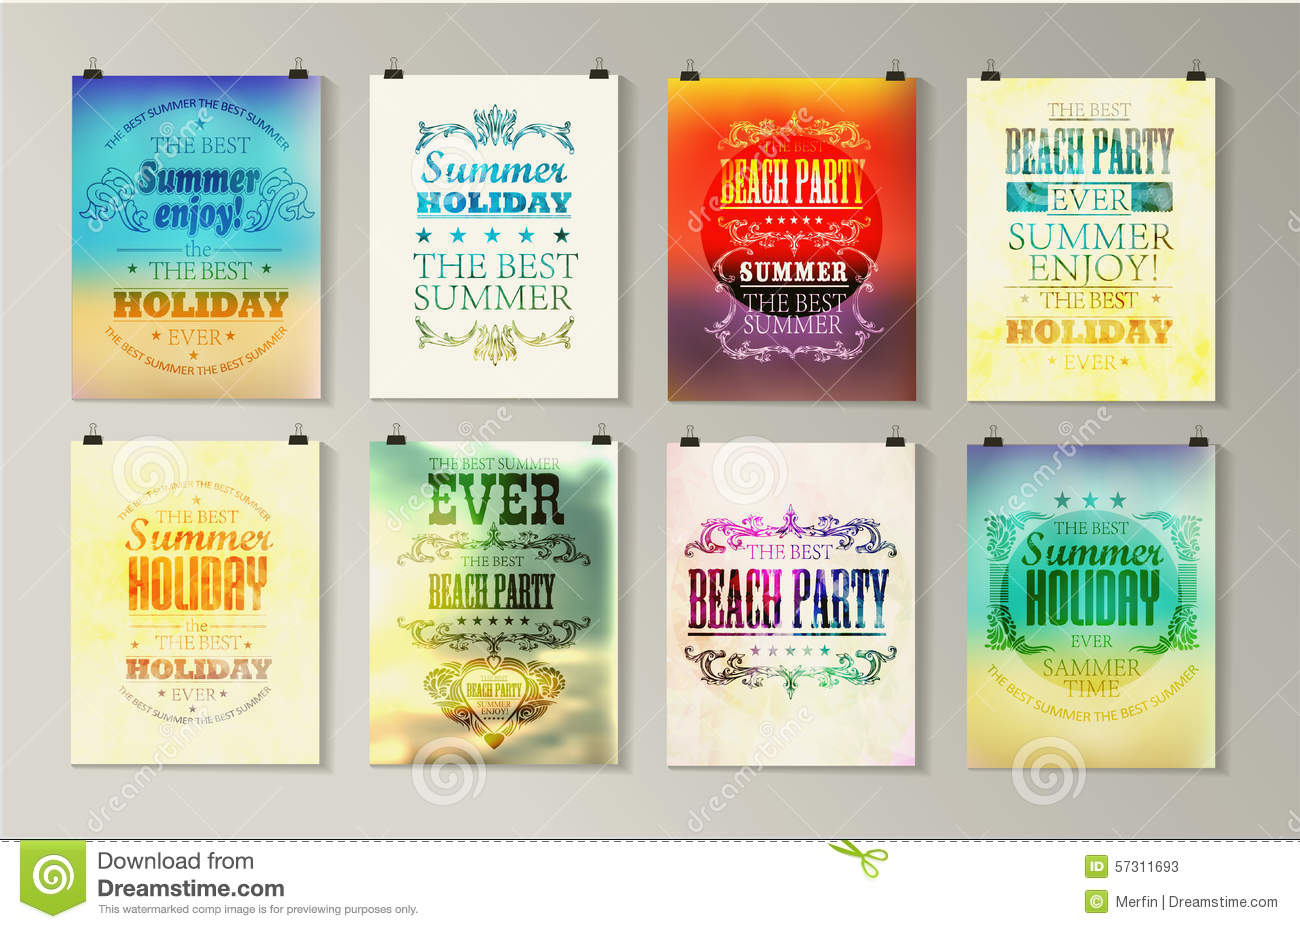 Poster design elements - Elements Of A Poster Design Design Elements For A Poster Background Calligraphic Design Poster